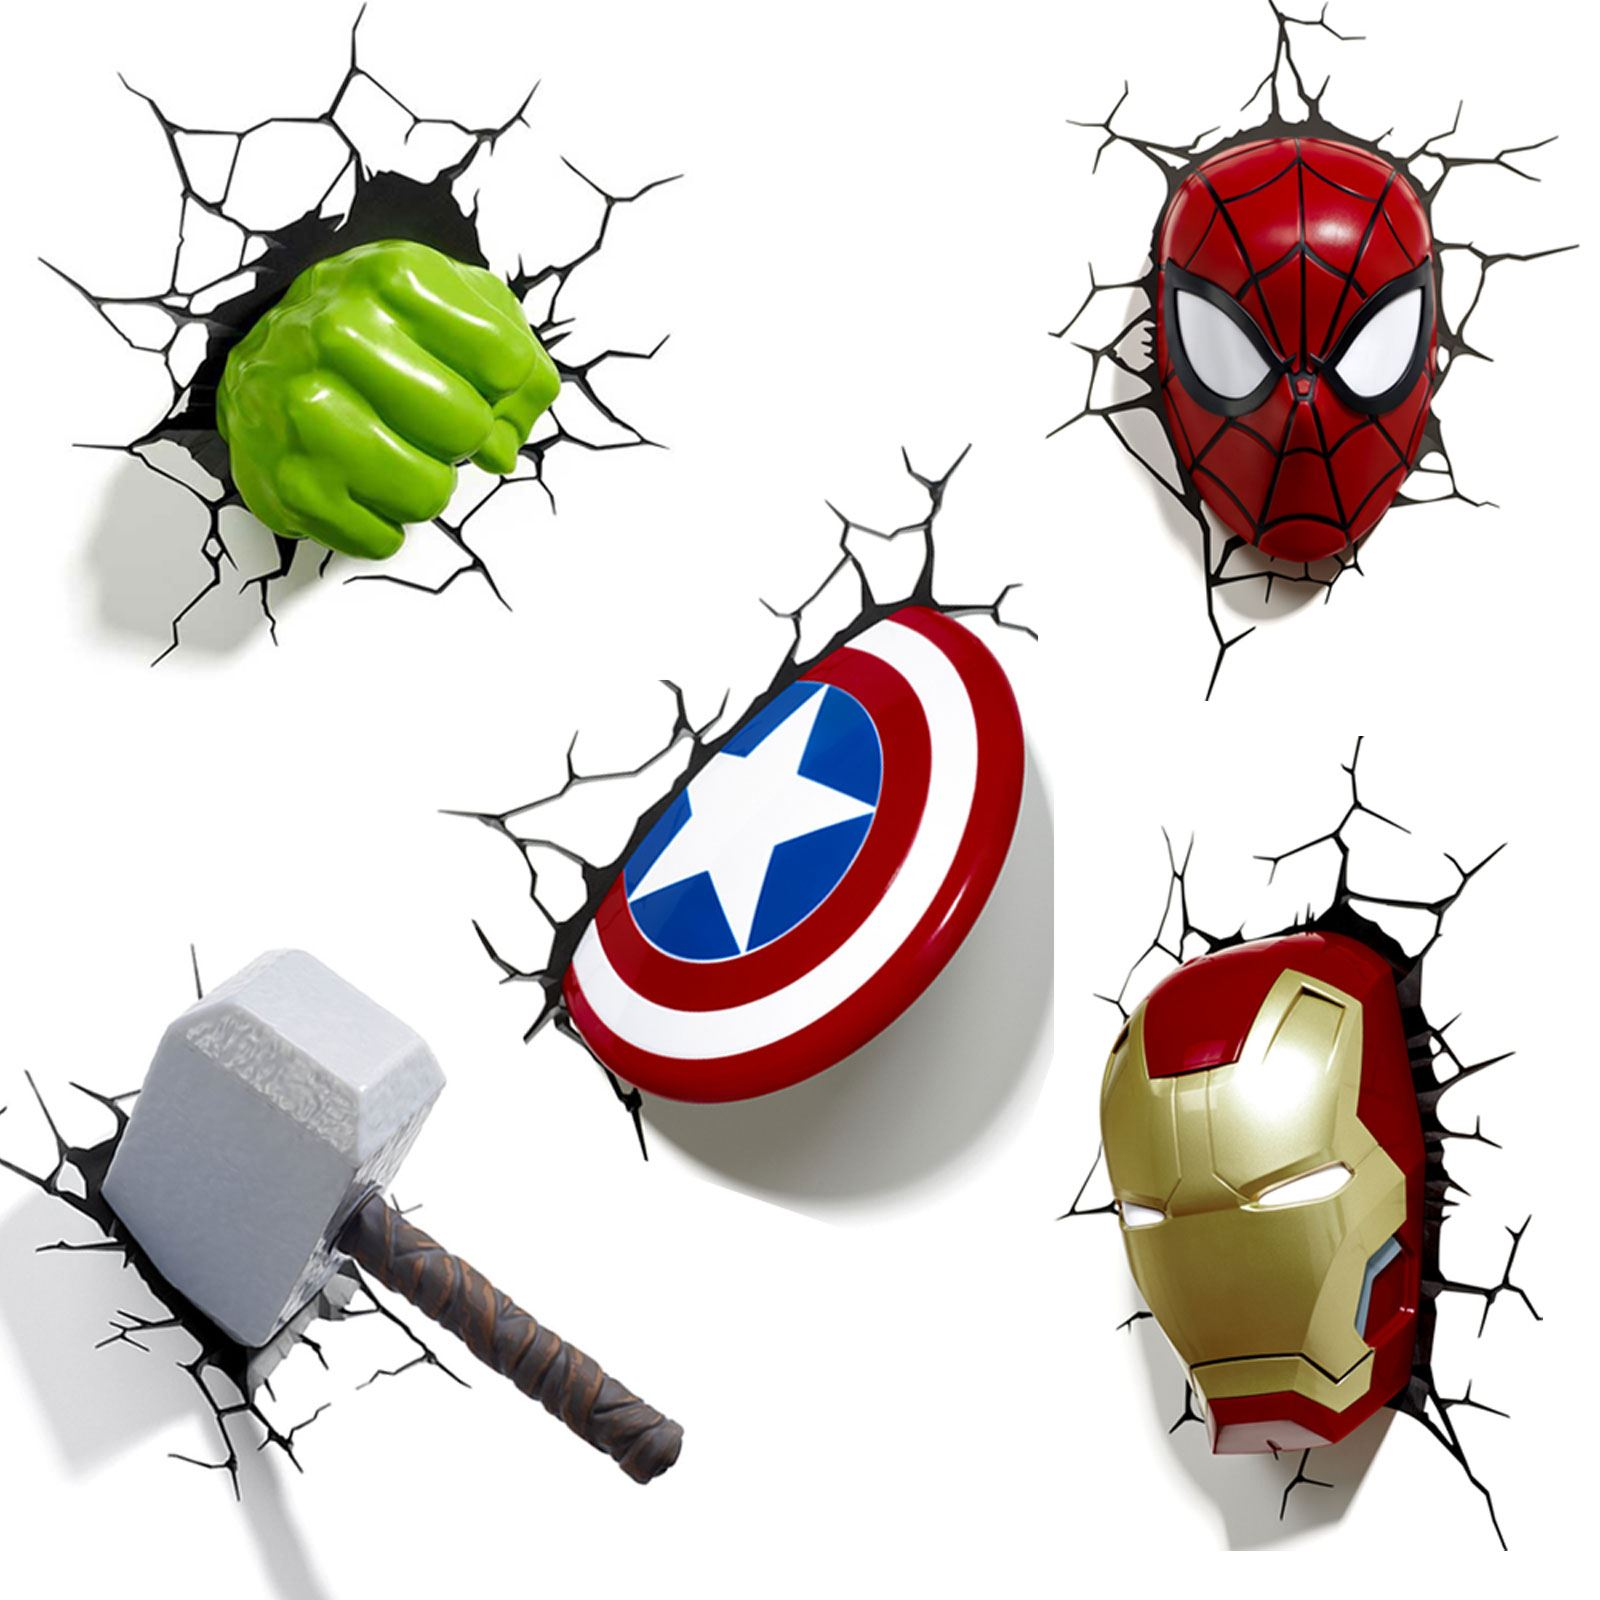 Marvel Wall Lights Spiderman : MARVEL AVENGERS 3D WALL LIGHT - HULK, IRON MAN, CAPTAIN AMERICA, THOR, SPIDERMAN eBay